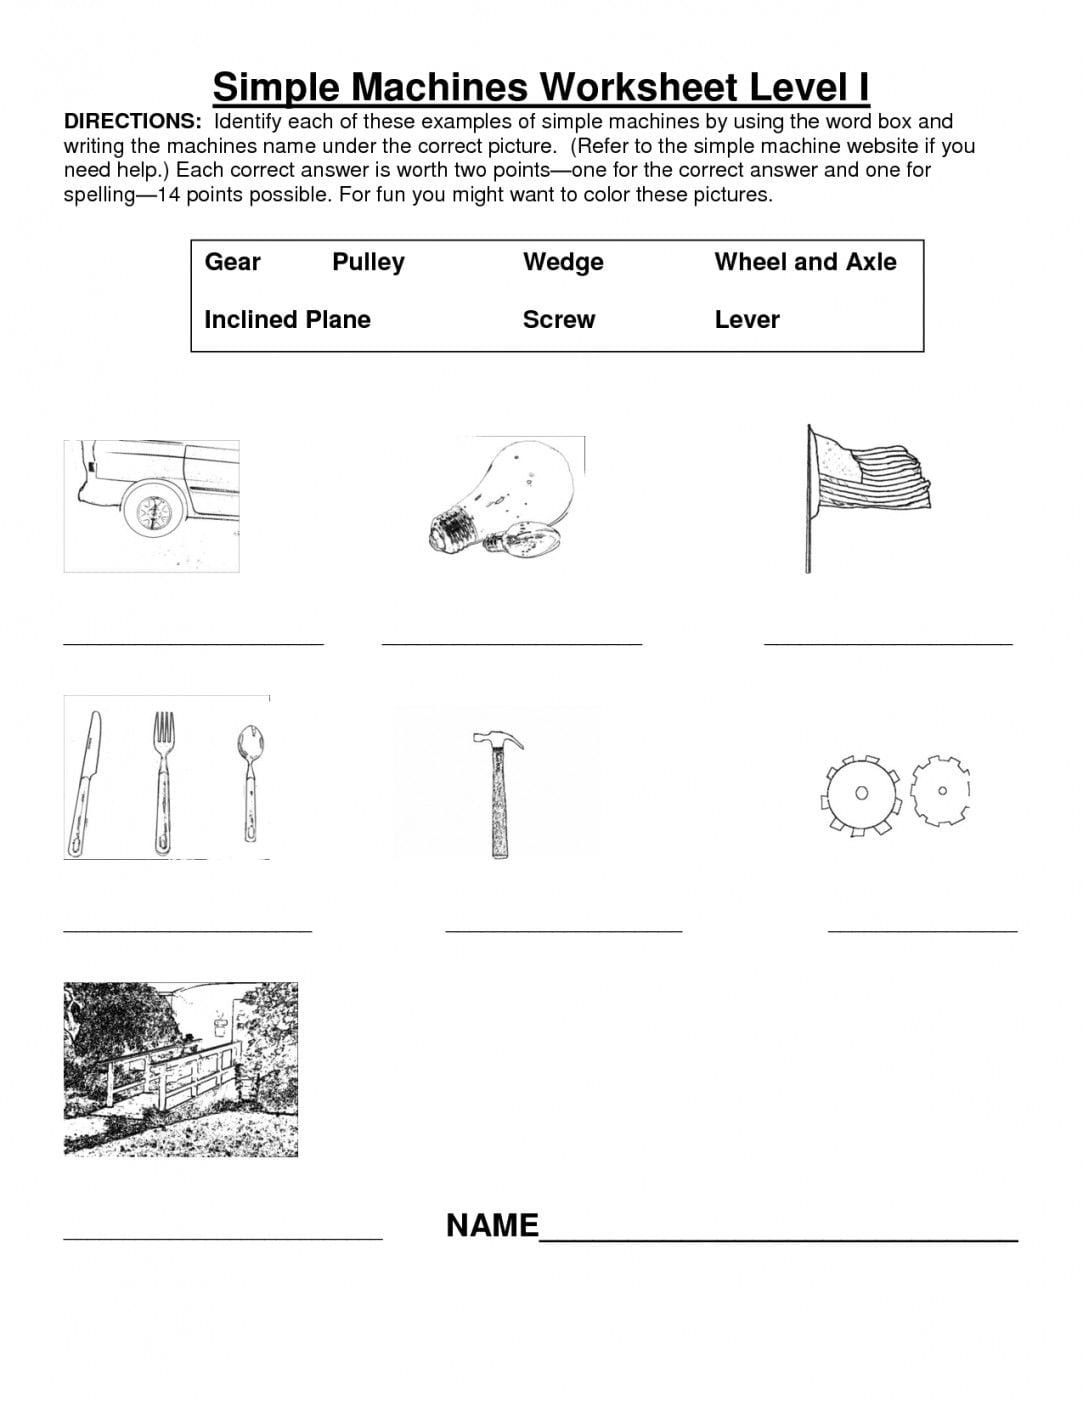 Simple Machines Worksheet Middle School